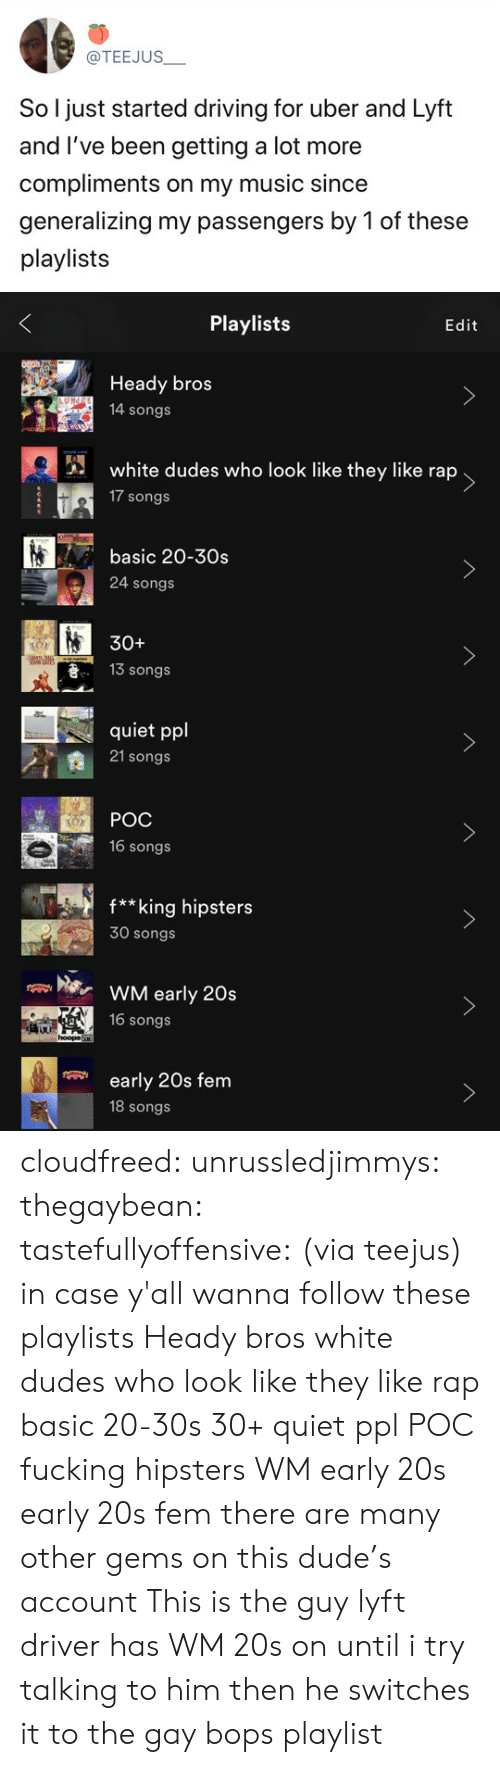 hipsters: @TEEJUS  So l just started driving for uber and Lyft  and I've been getting a lot more  compliments on my music since  generalizing my passengers by 1 of these  playlists   Playlists  Edit  Heady bros  14 songs  white dudes who look like they like rap  17 songs  basic 20-30s  >  24 songs  30+  13 Songs  quiet ppl  21 songs   POC  16 songs  f**king hipsters  30 songs  WM early 20s  16 songs  hoopa  early 20s fem  18 songs cloudfreed:  unrussledjimmys:  thegaybean:  tastefullyoffensive: (via teejus)  in case y'all wanna follow these playlists  Heady bros  white dudes who look like they like rap  basic 20-30s  30+  quiet ppl  POC  fucking hipsters  WM early 20s  early 20s fem there are many other gems on this dude's account  This is the guy  lyft driver has WM 20s on until i try talking to him then he switches it to the gay bops playlist